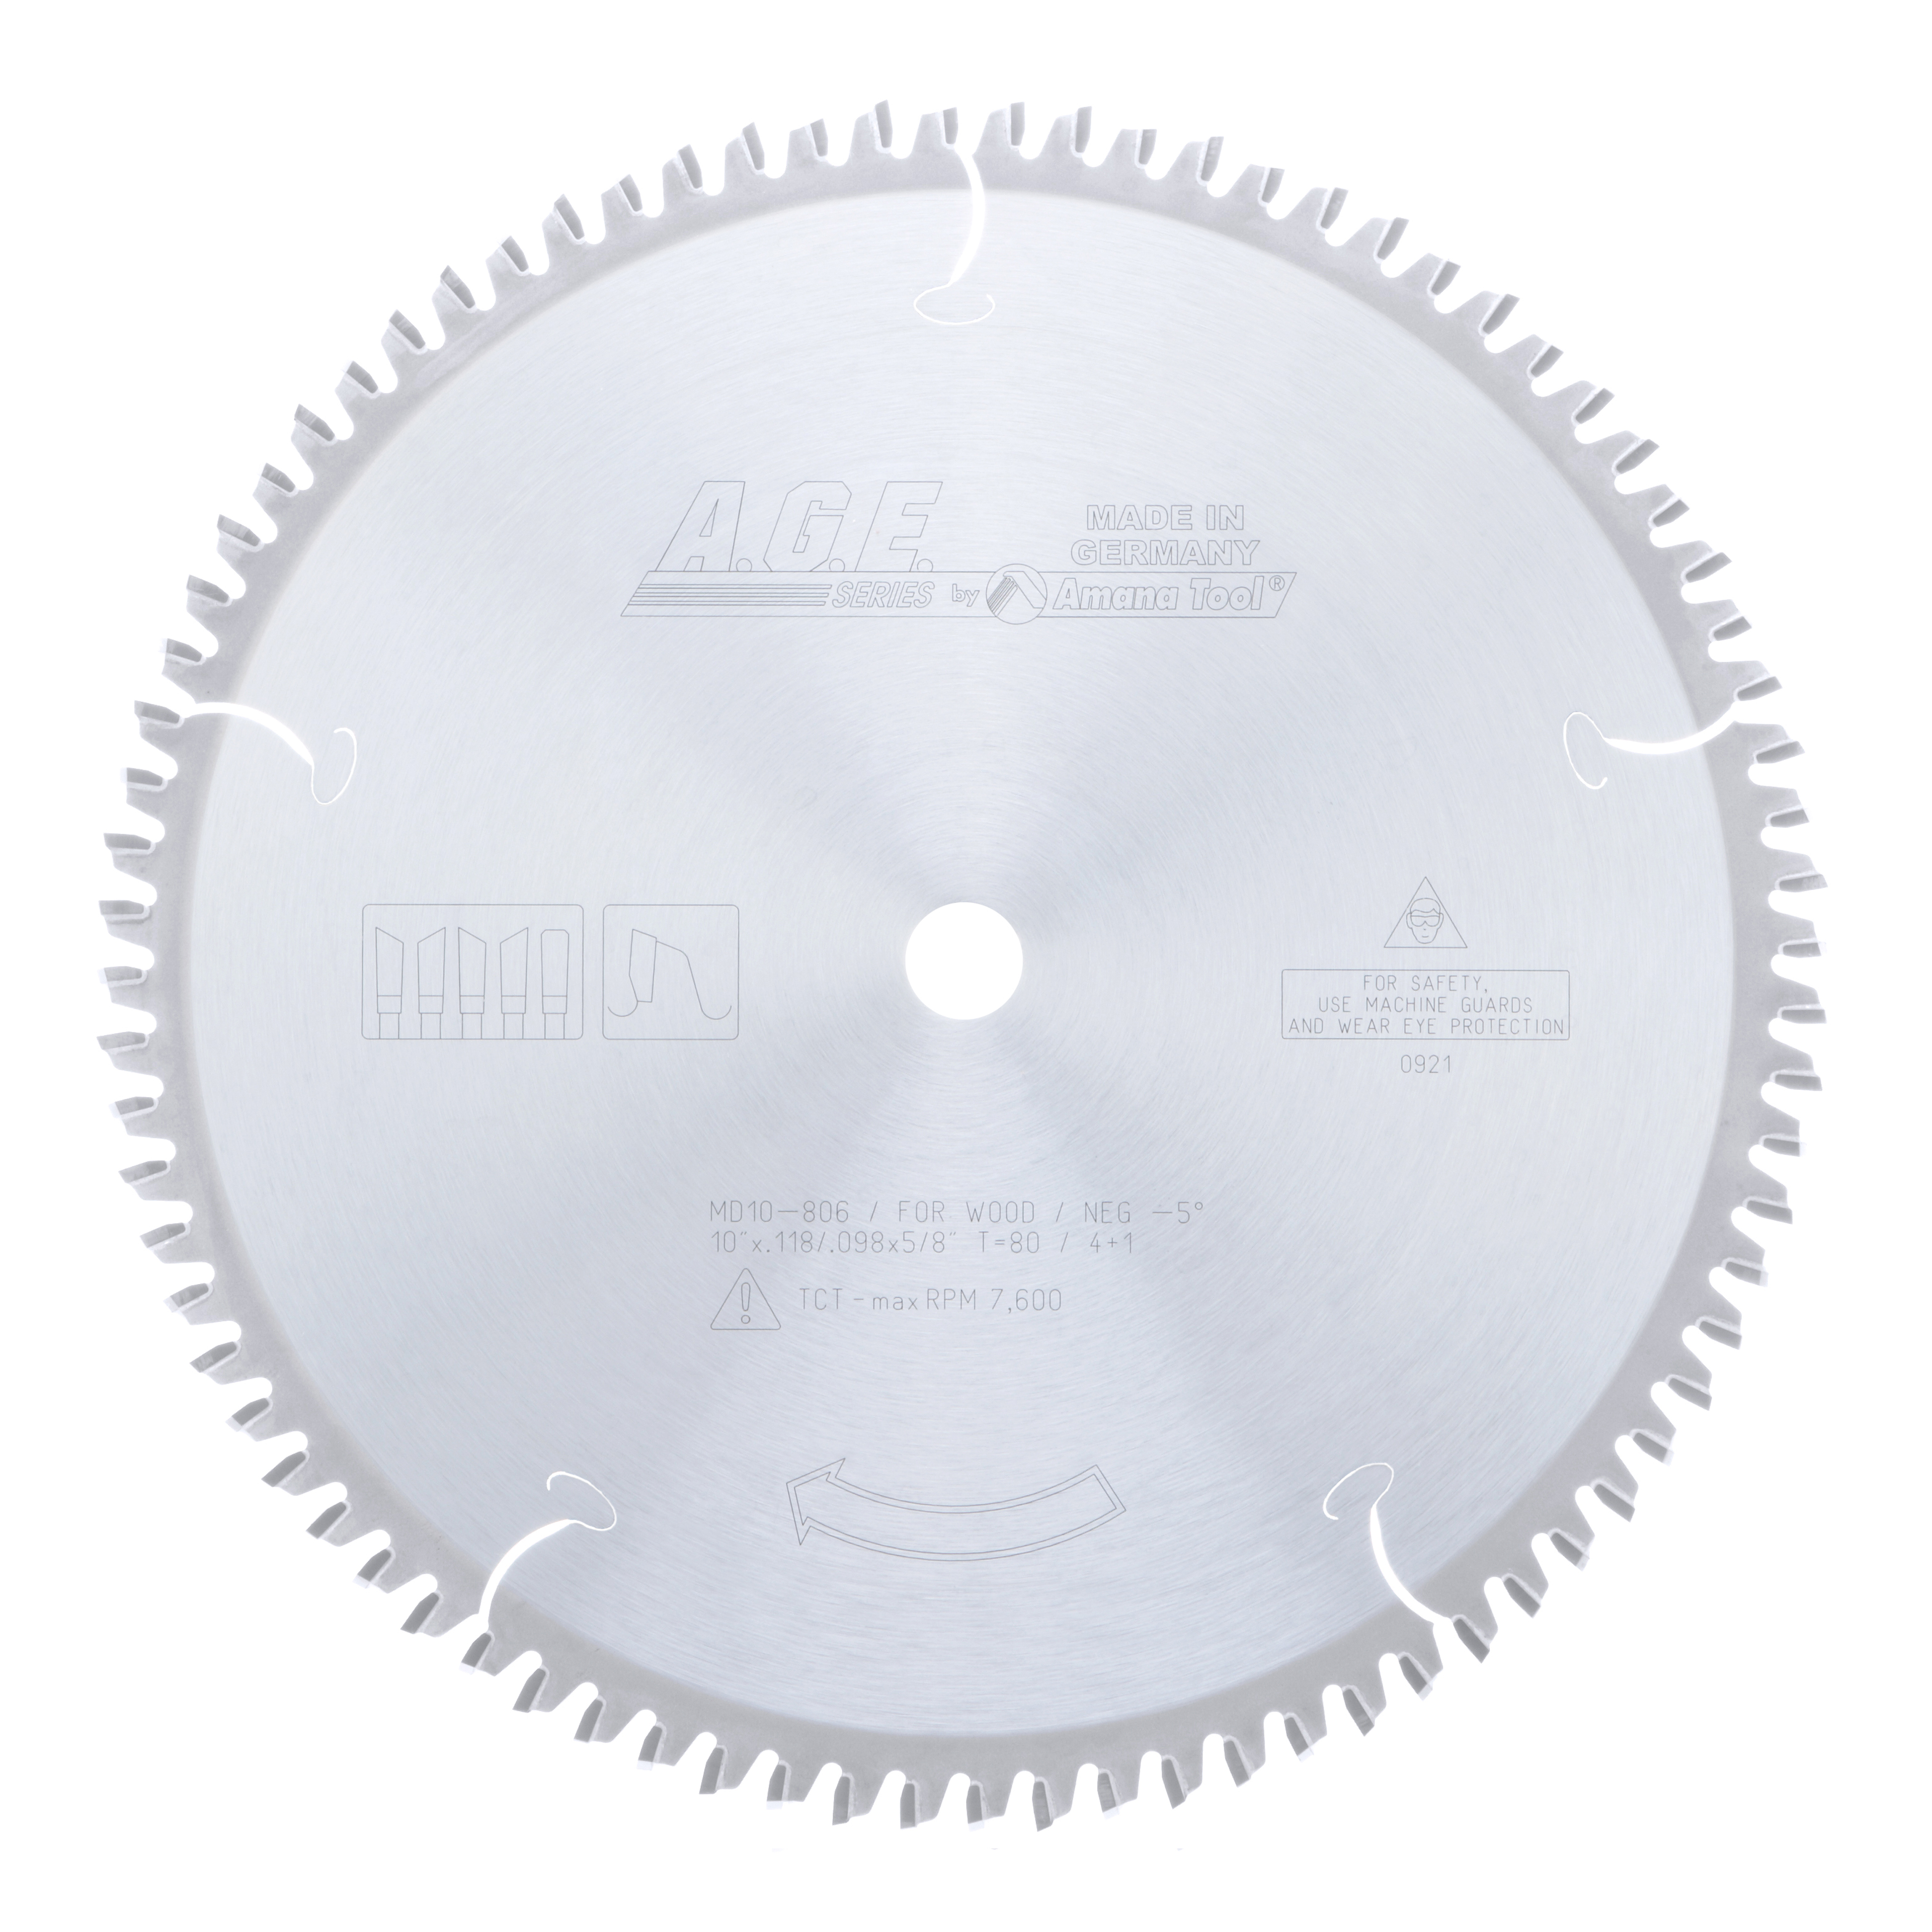 Amana Tool MD10-806 Carbide Tipped Heavy-Duty Miter/Double Miter 10 Inch Dia x 80T 4+1, -5 Deg, 5/8 Bore Circular Saw Blade